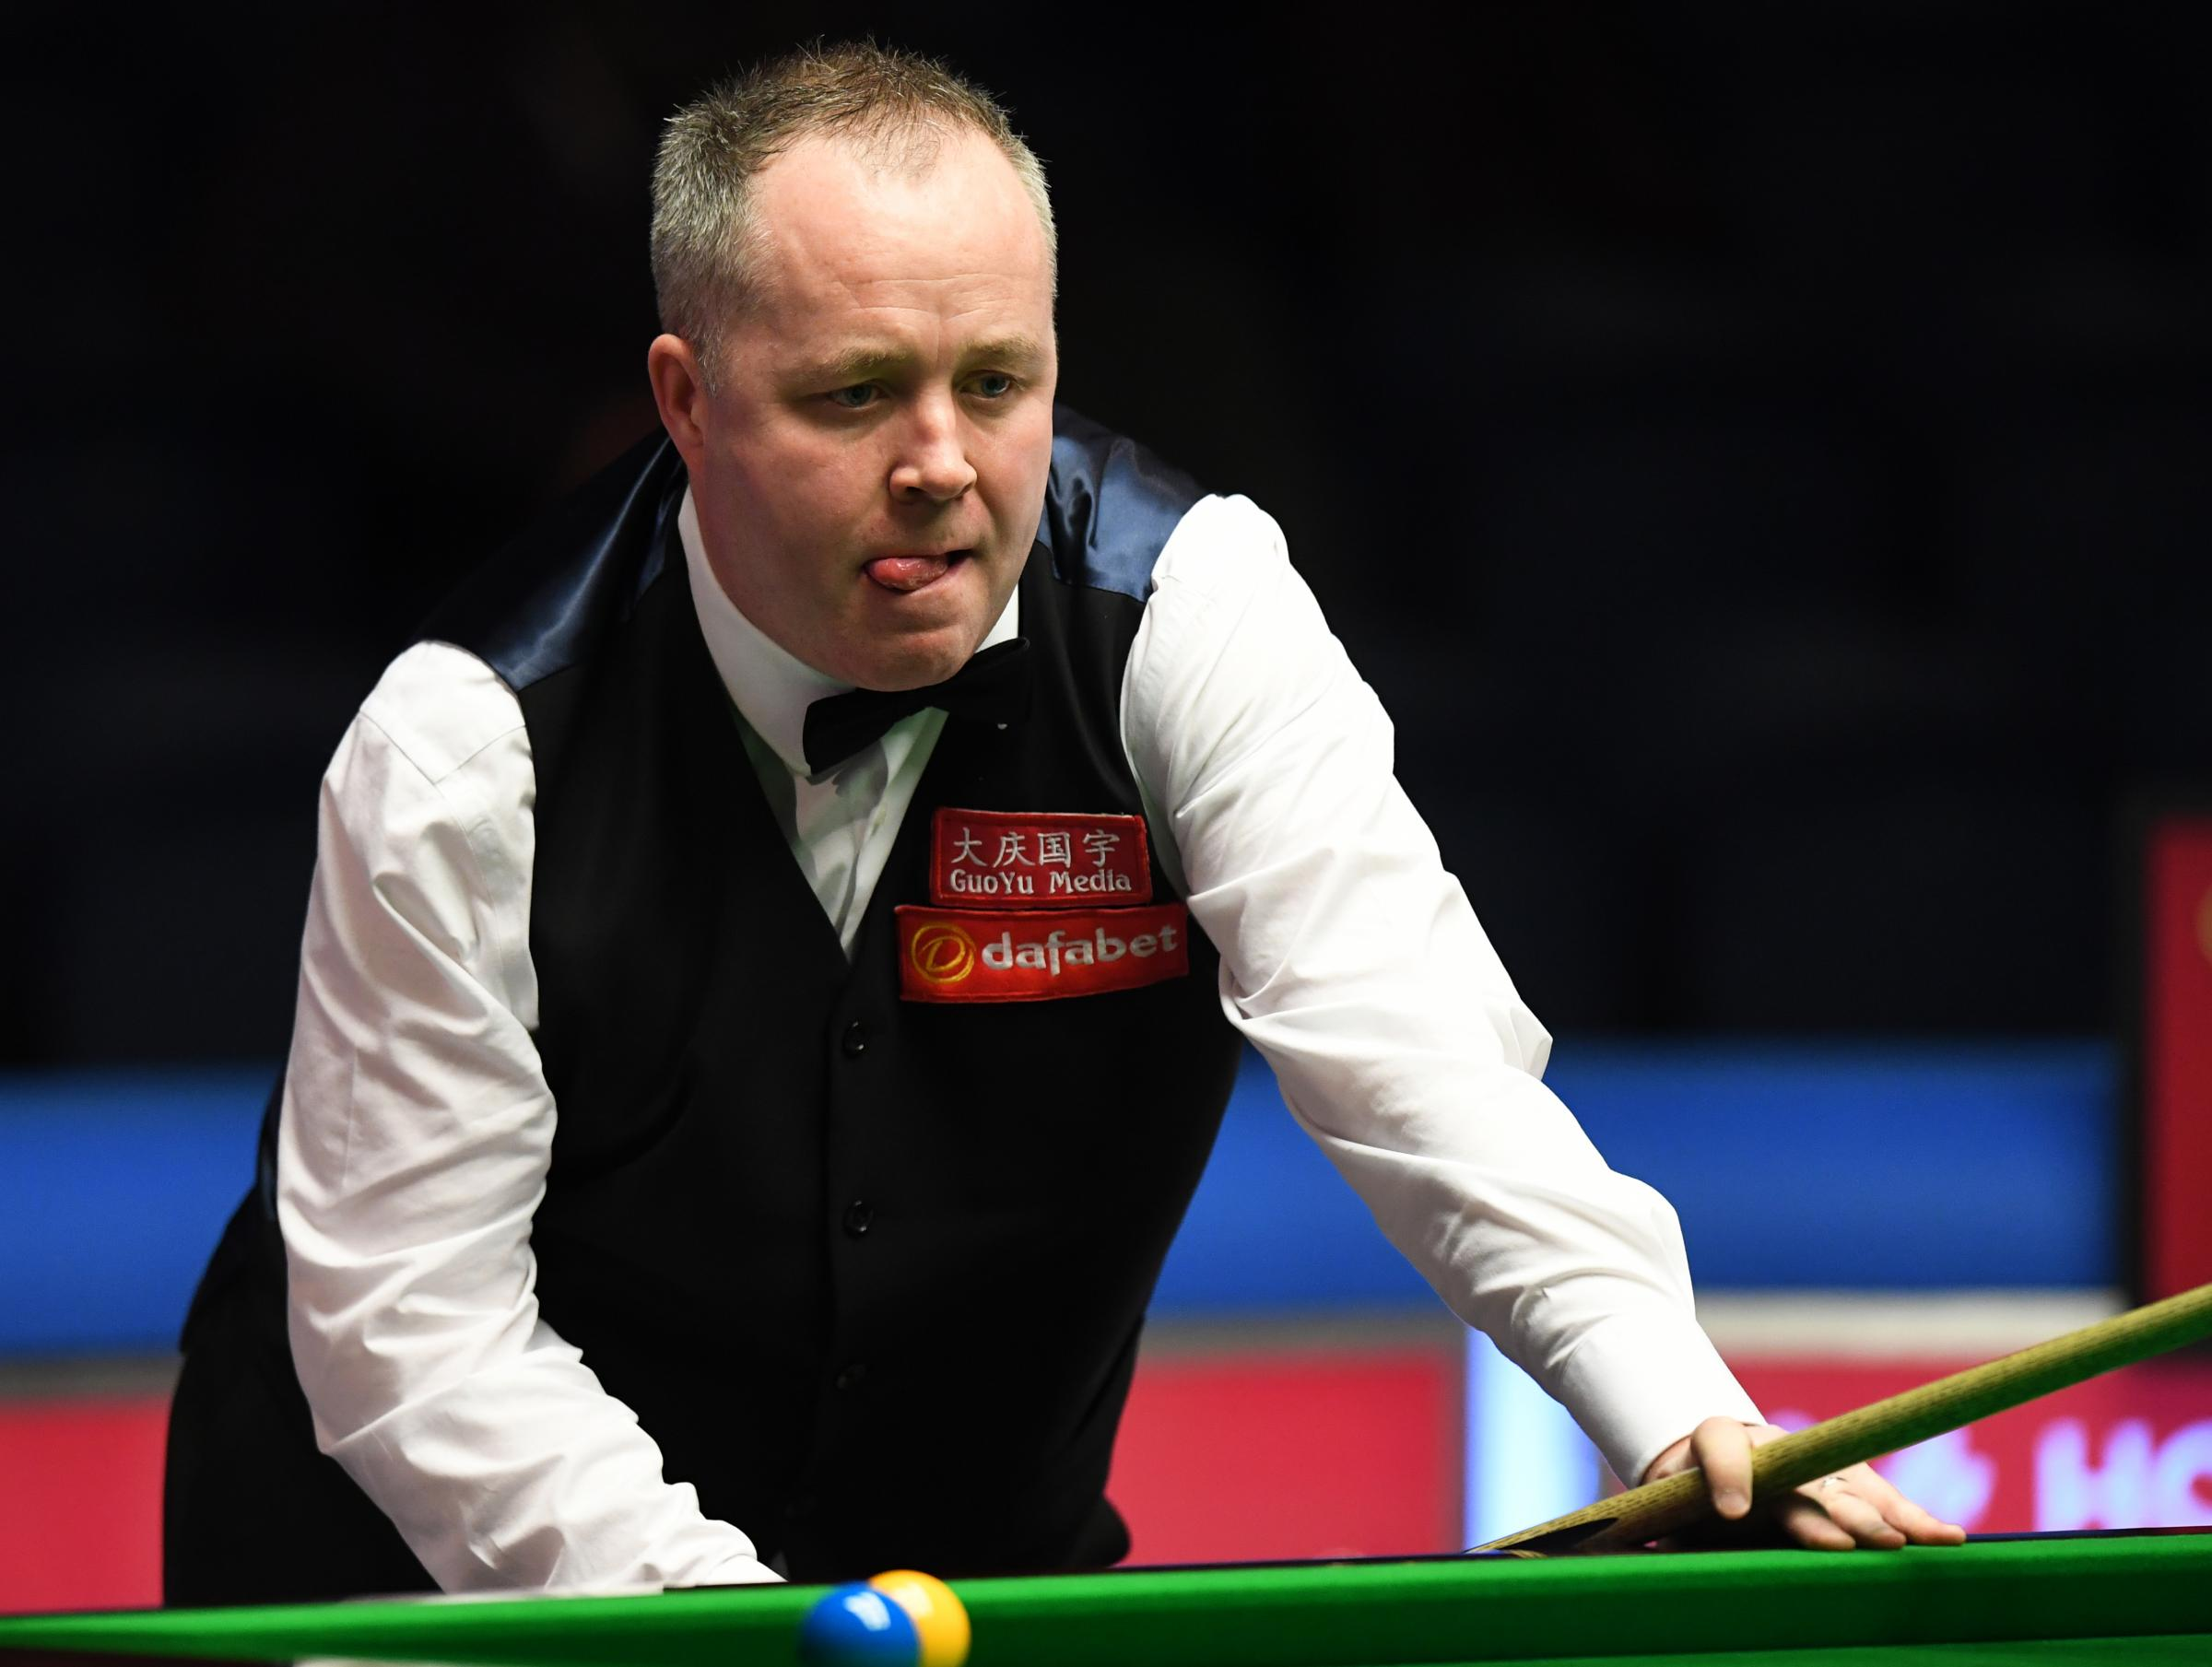 John Higgins continued on from Monday's first-round victory